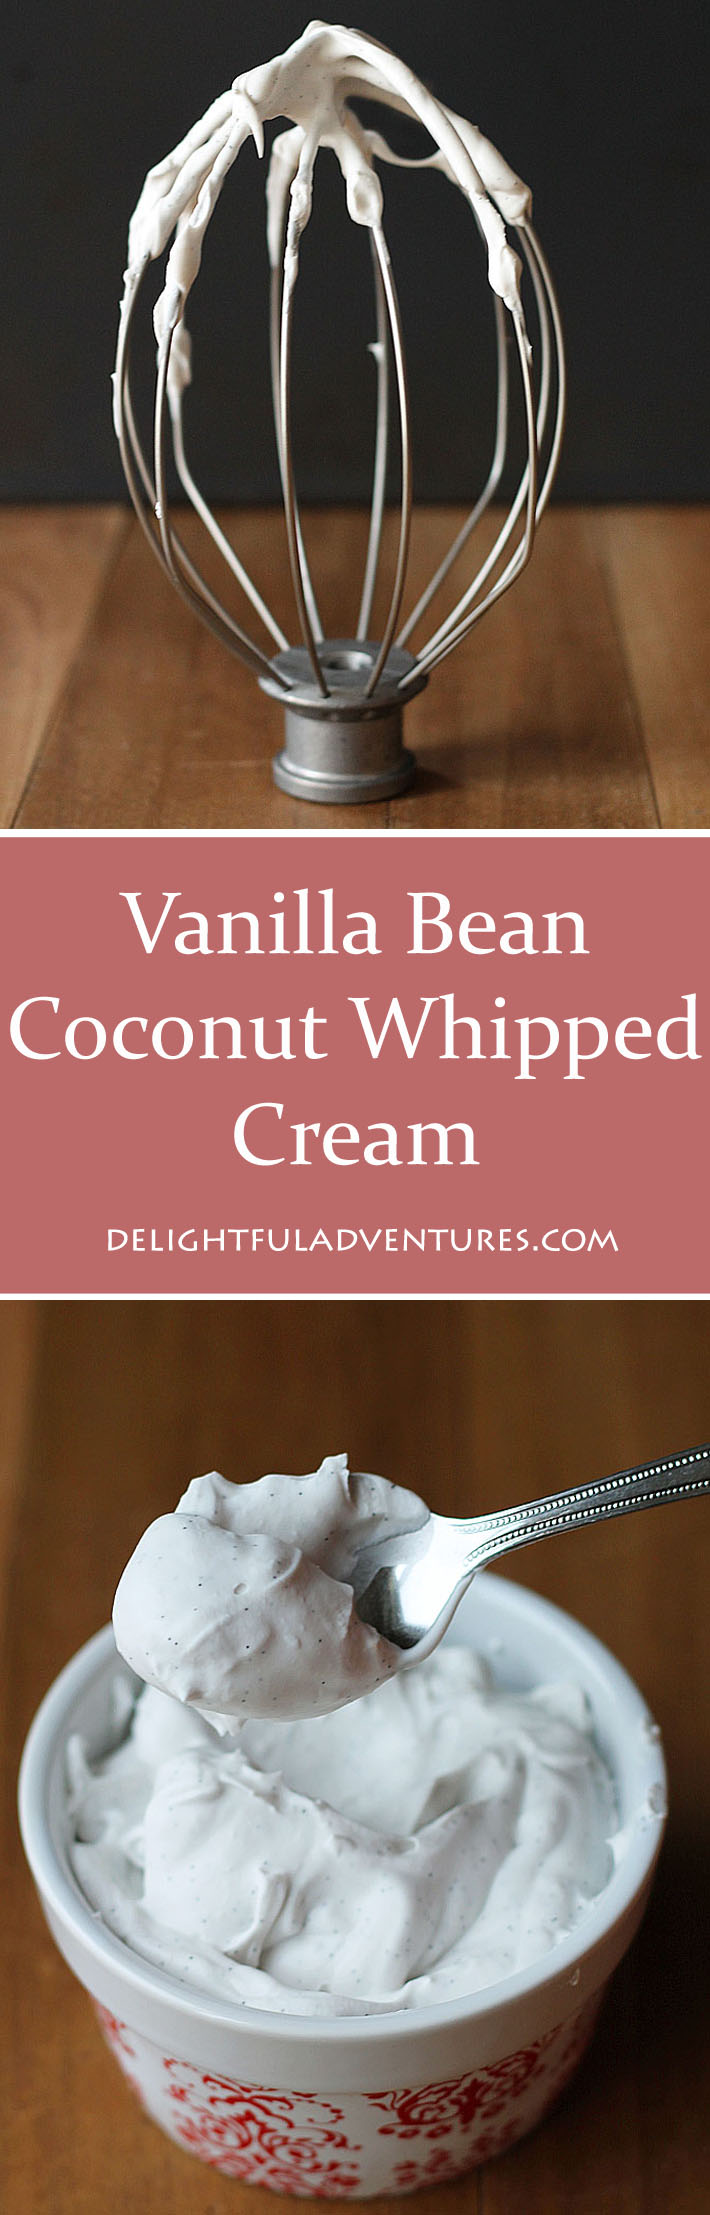 Thai Kitchen Lite Coconut Milk vanilla bean coconut whipped cream - delightful adventures